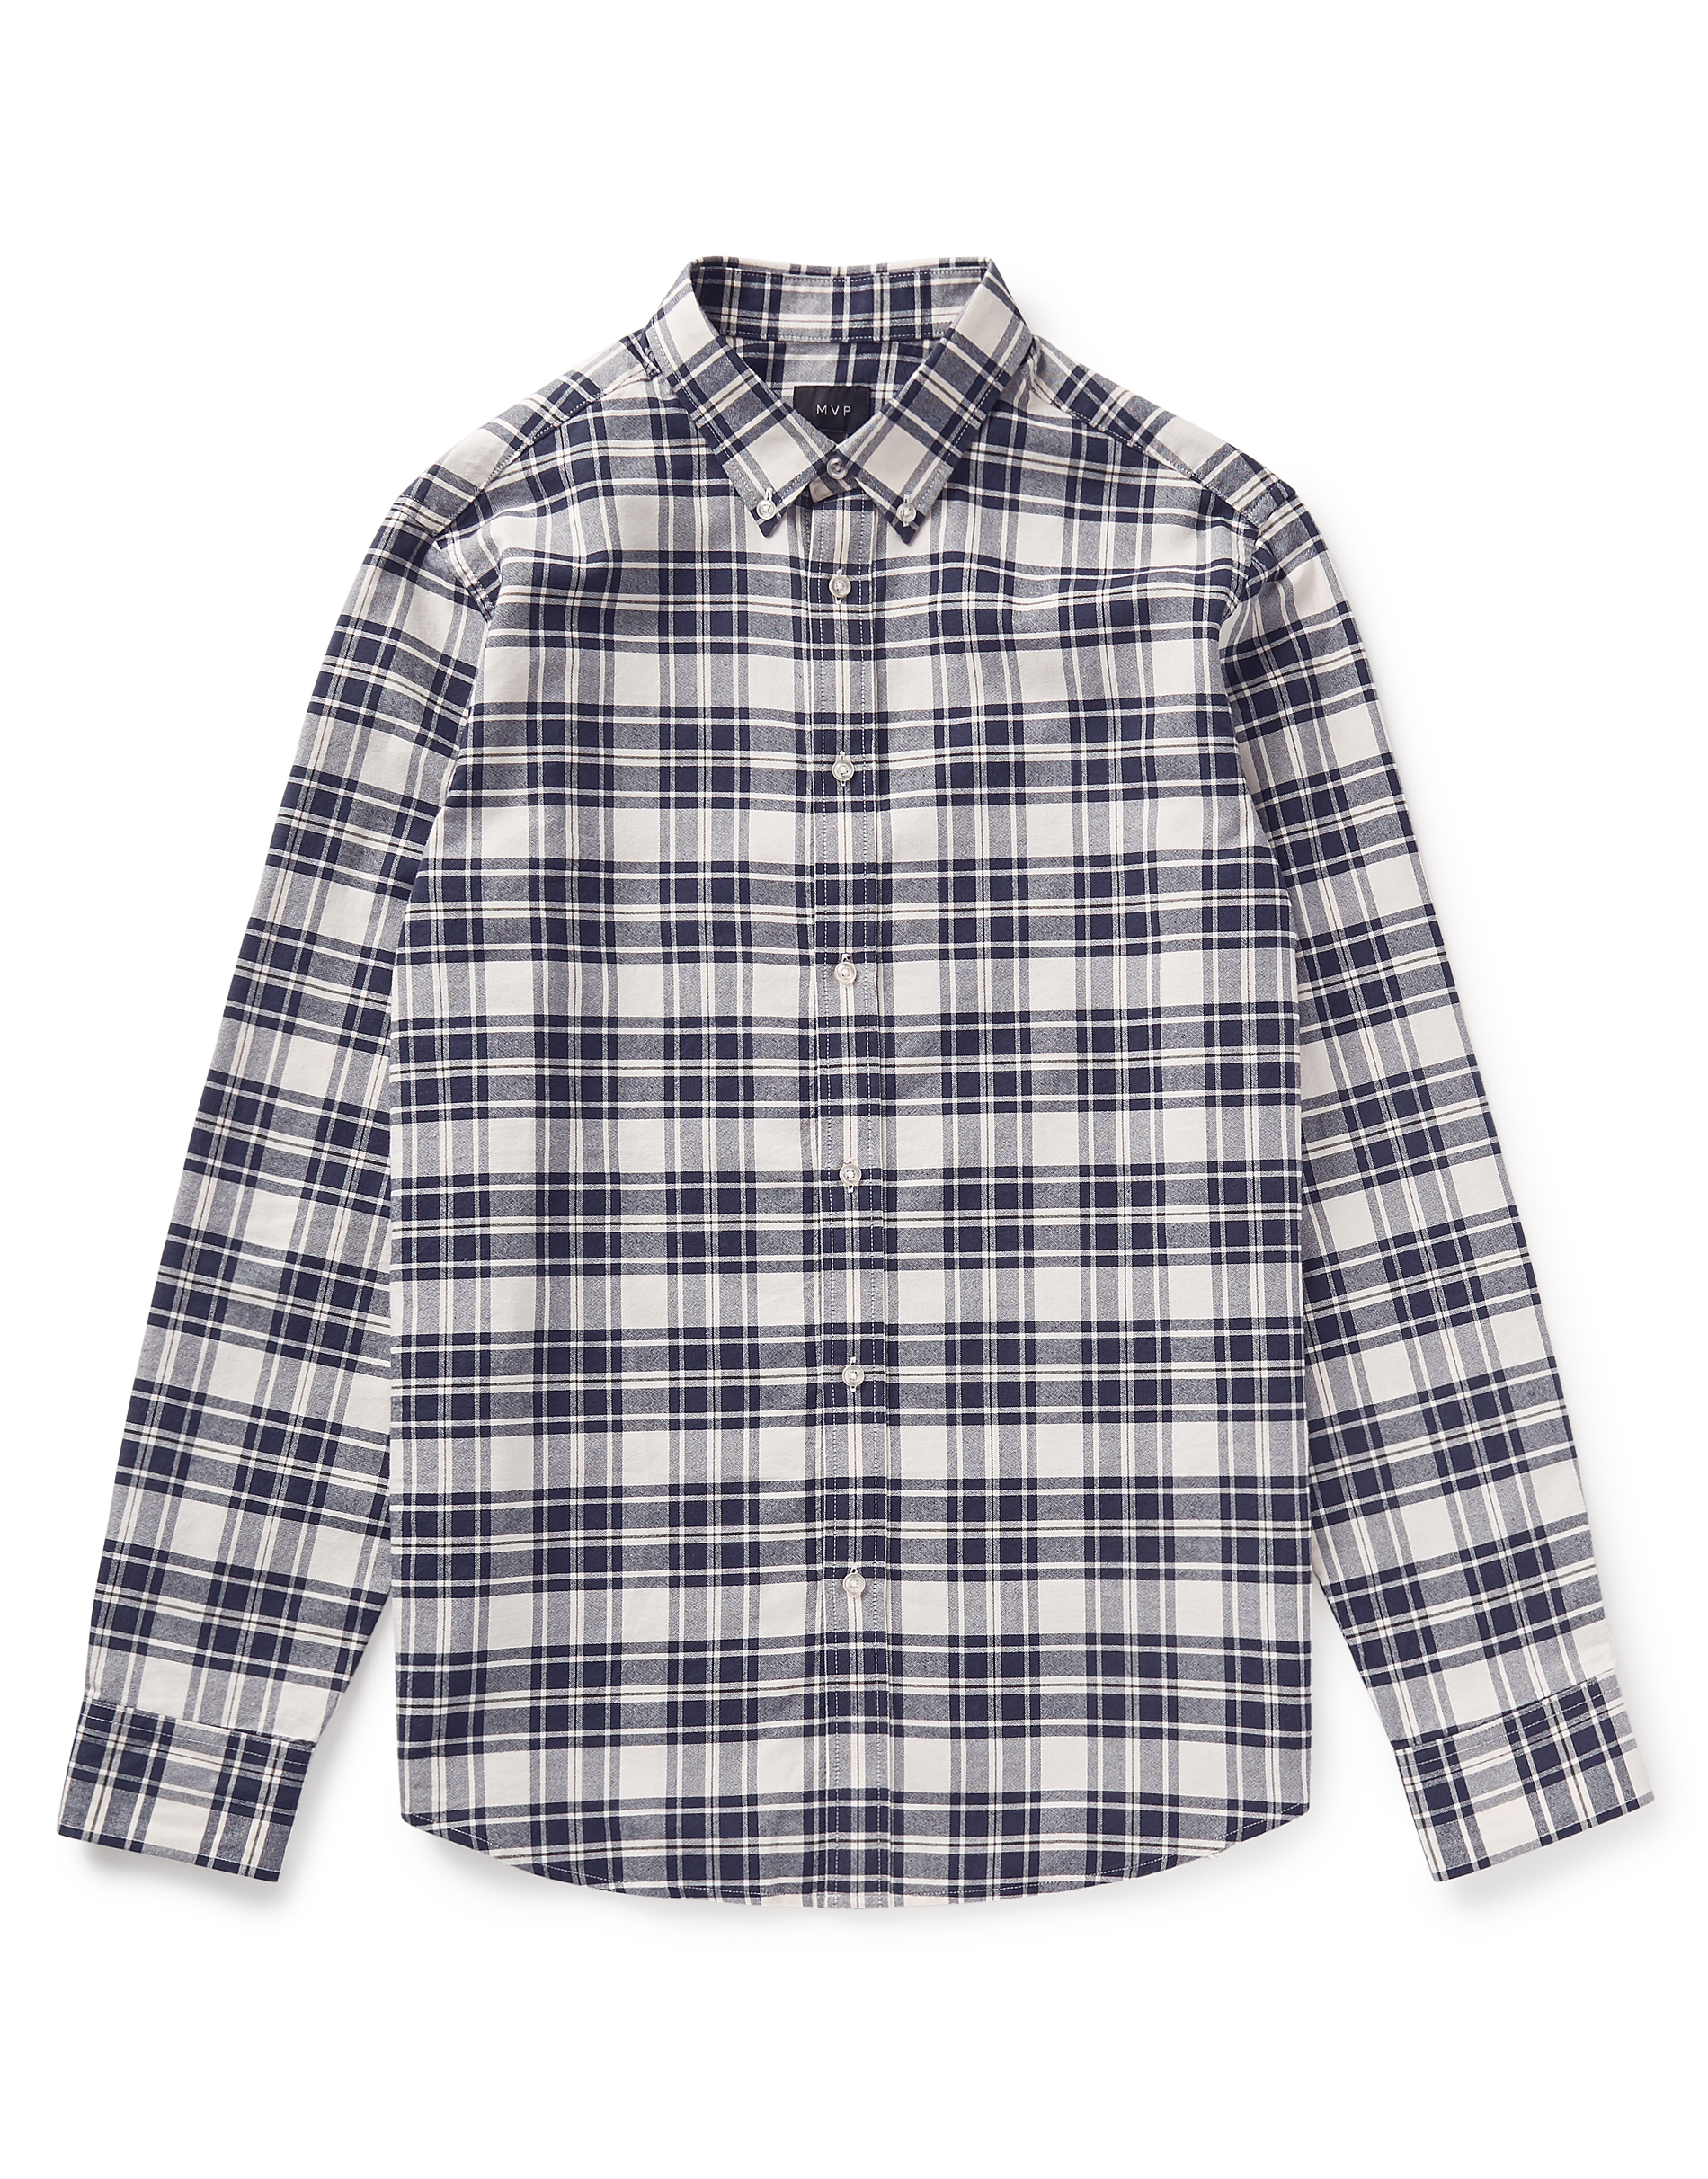 MVP Navy Check Baxendale Brushed Cotton Oxford Check Shirt - Navy